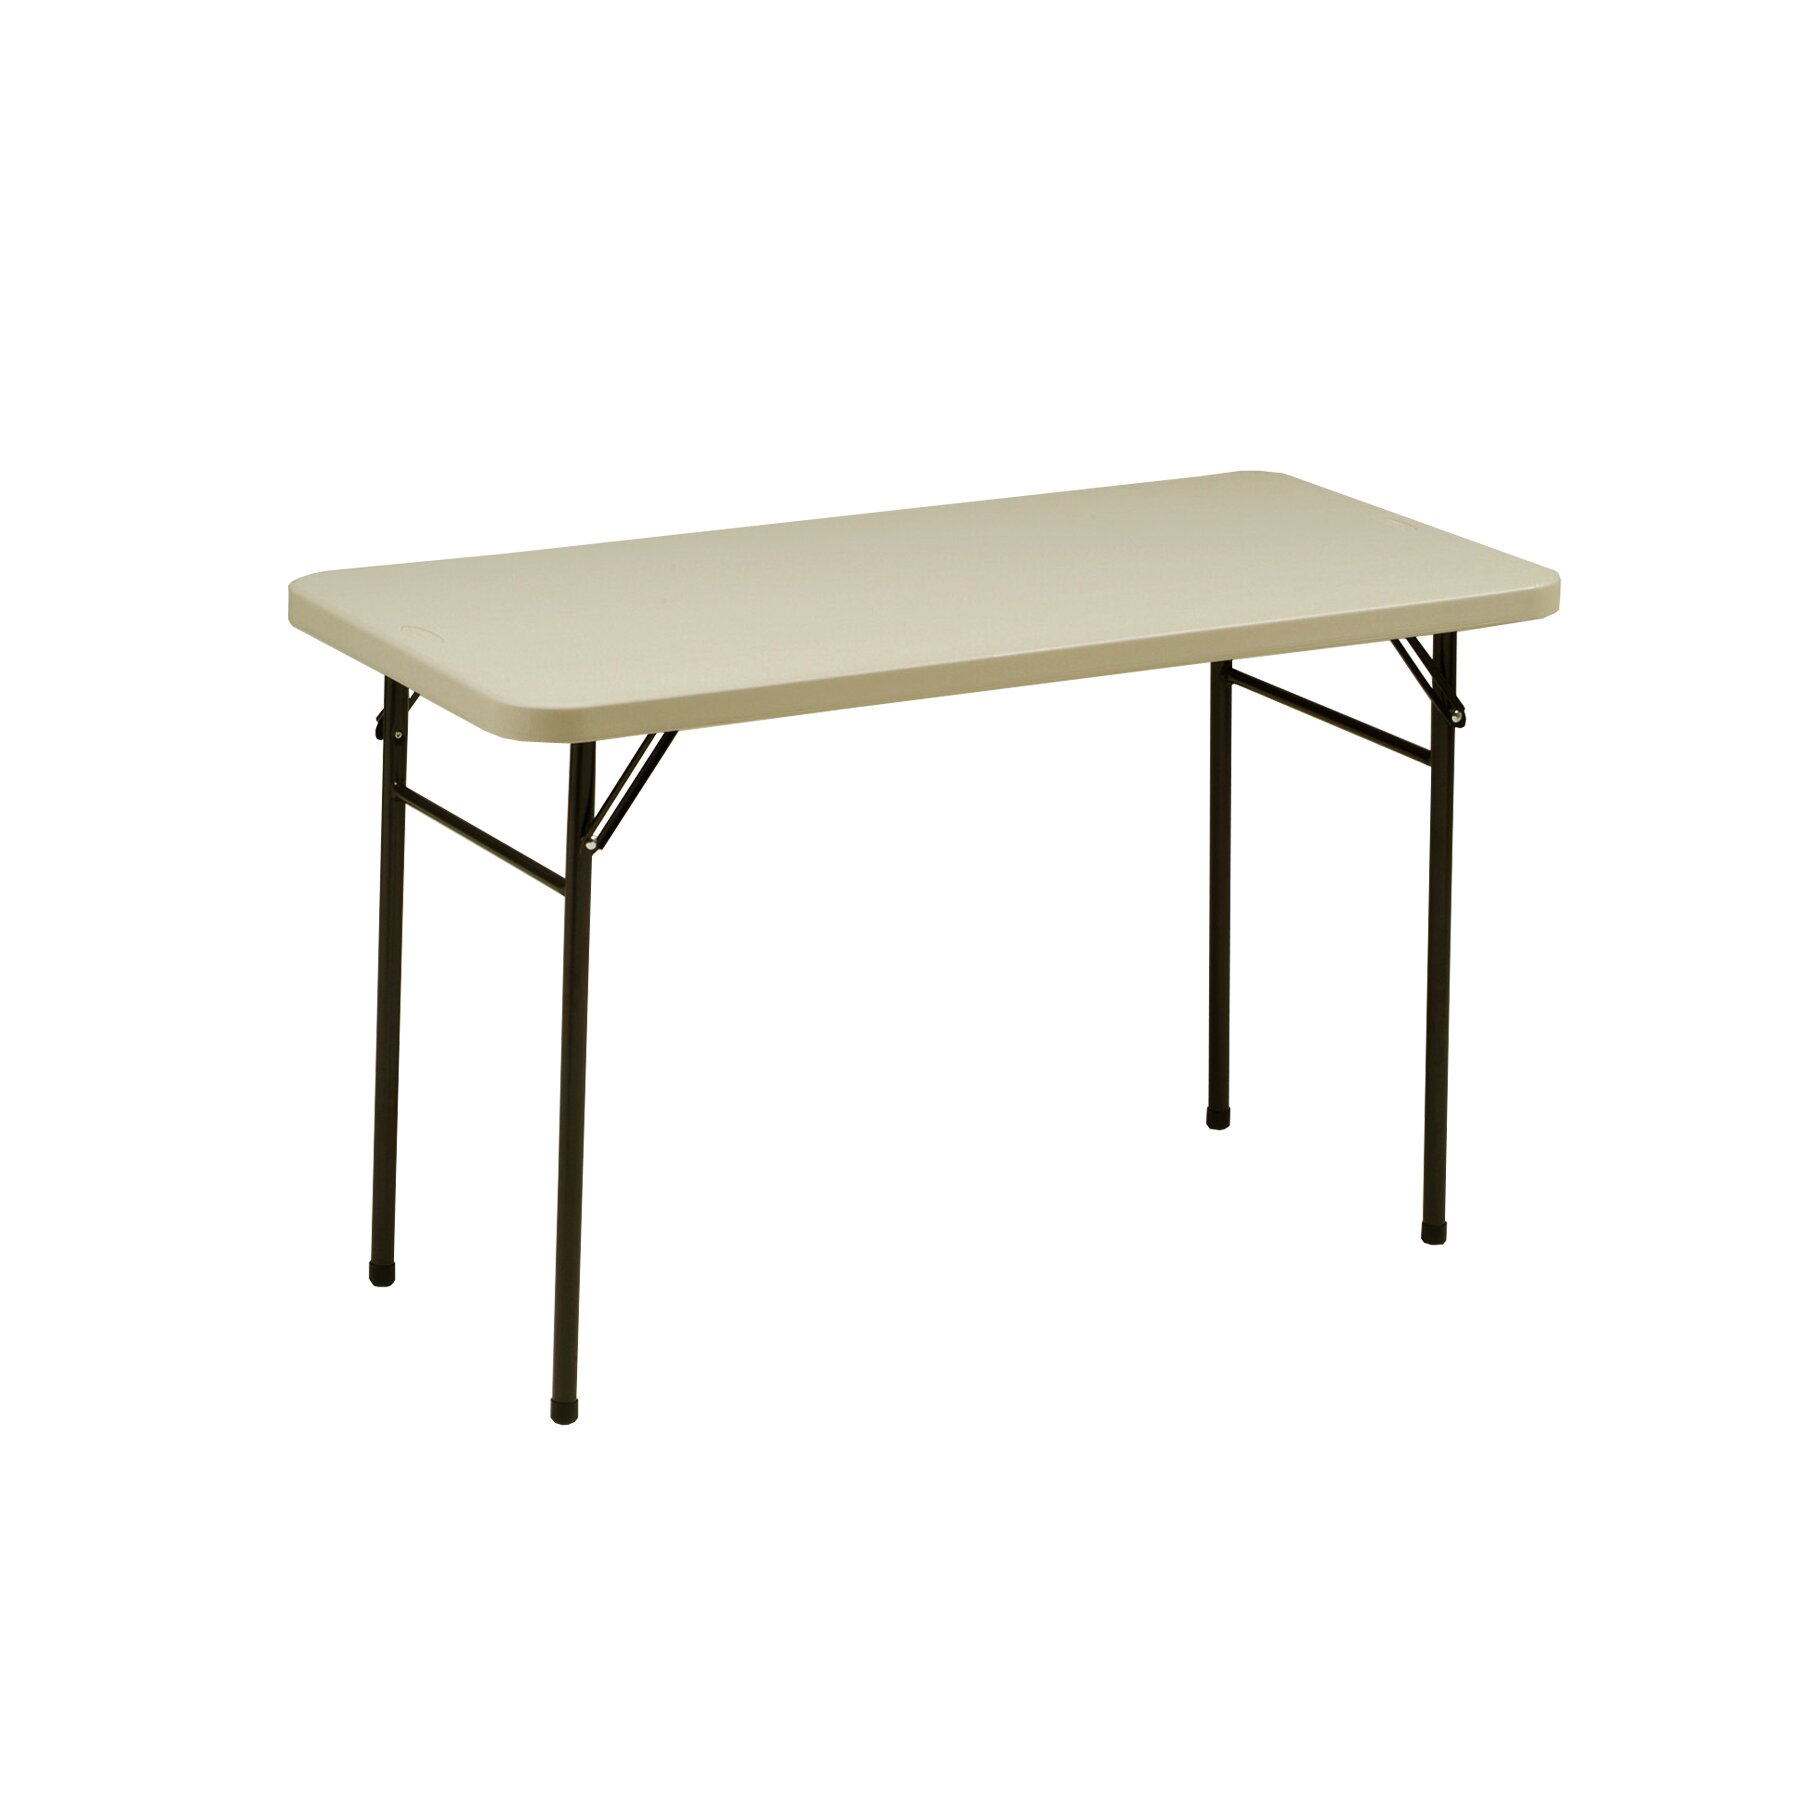 Meco 48 rectangular folding table reviews wayfair for 12 in 1 game table walmart